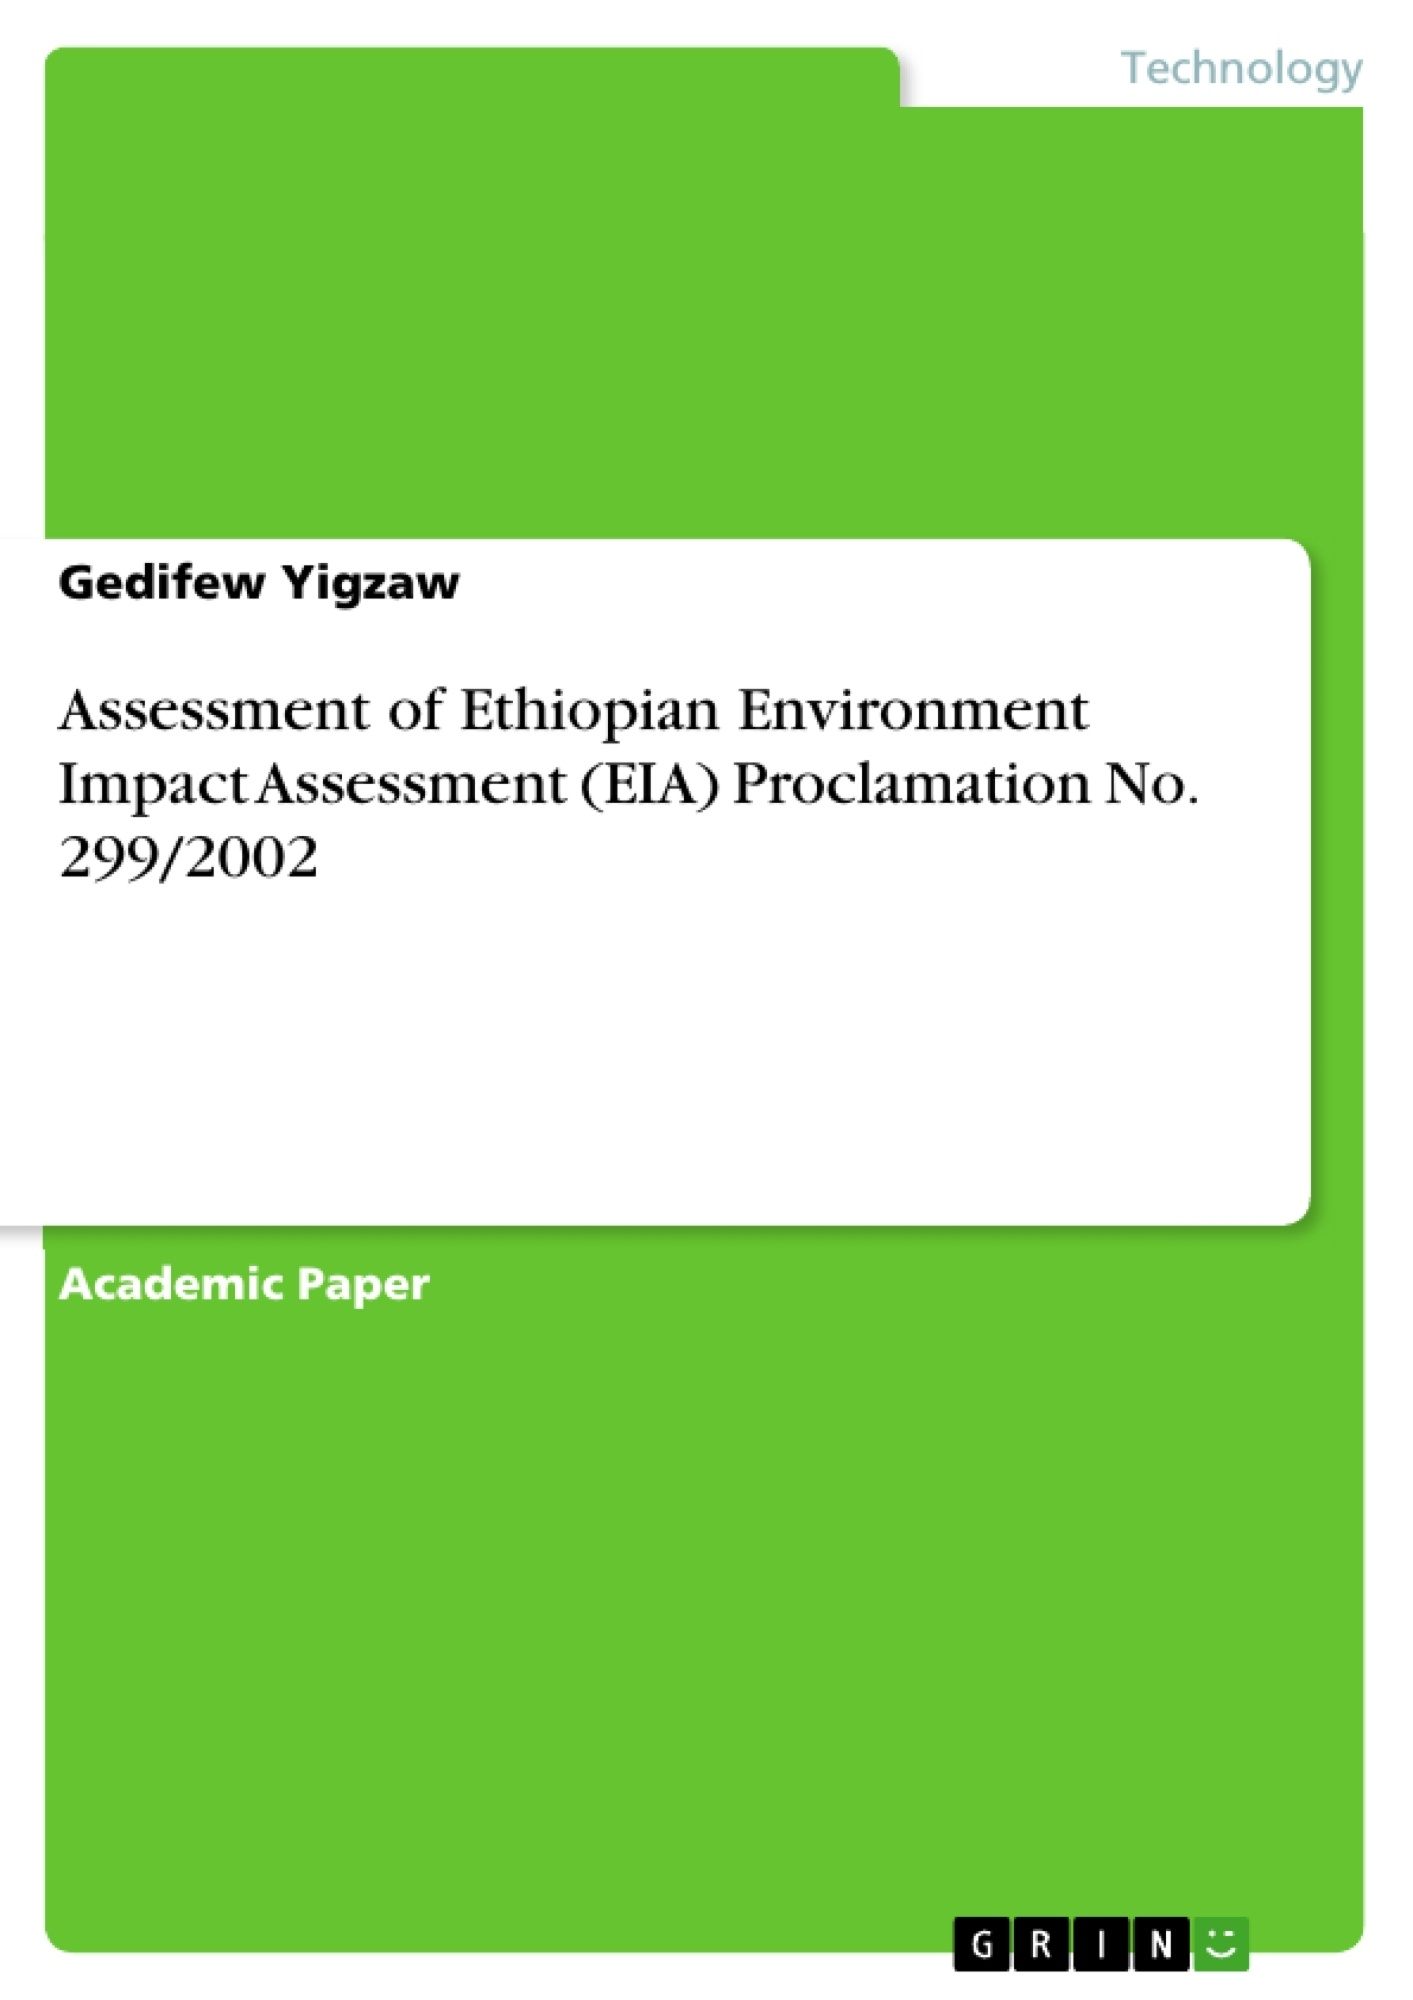 Title: Assessment of Ethiopian Environment Impact Assessment (EIA) Proclamation No. 299/2002